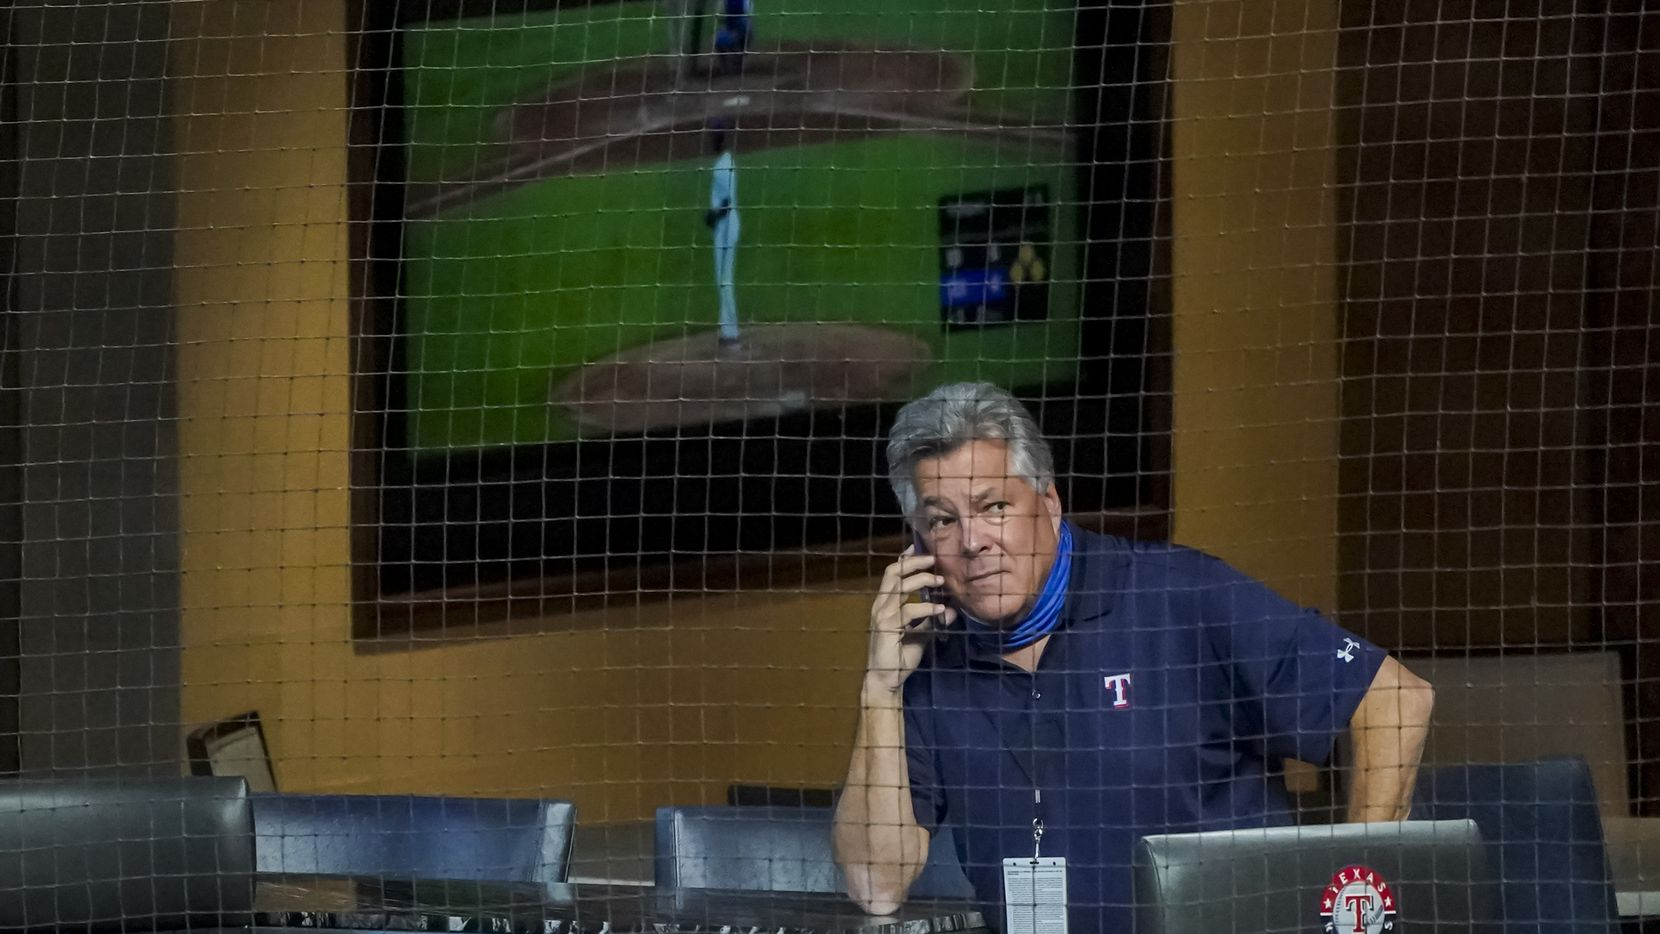 Texas Rangers chairman, ownership committee and chief operating officer Neil Leibman watches from a field level suite during the fifth inning against the San Diego Padres at Globe Life Field on Tuesday, Aug. 18, 2020. (Smiley N. Pool/The Dallas Morning News)